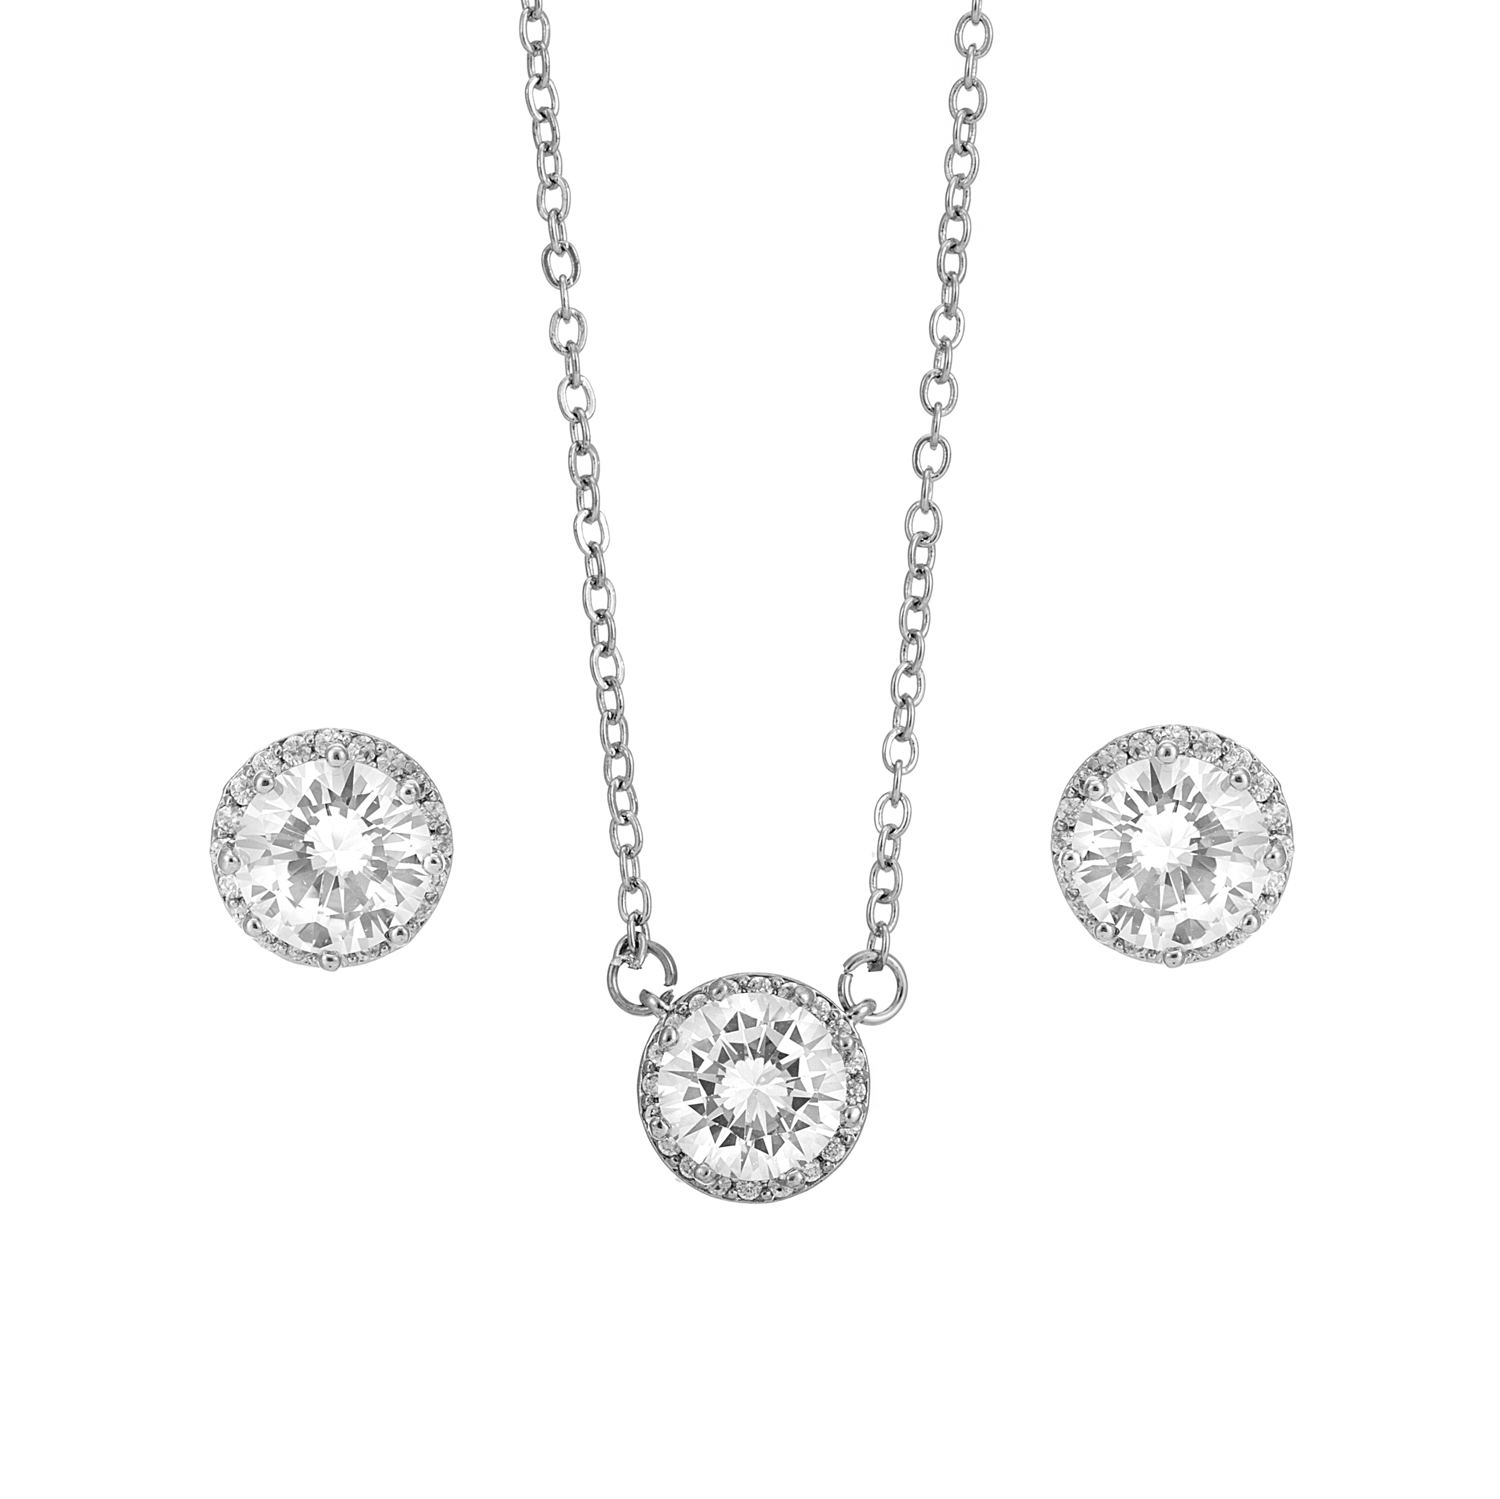 SILVER Classic Crystal Gift Set